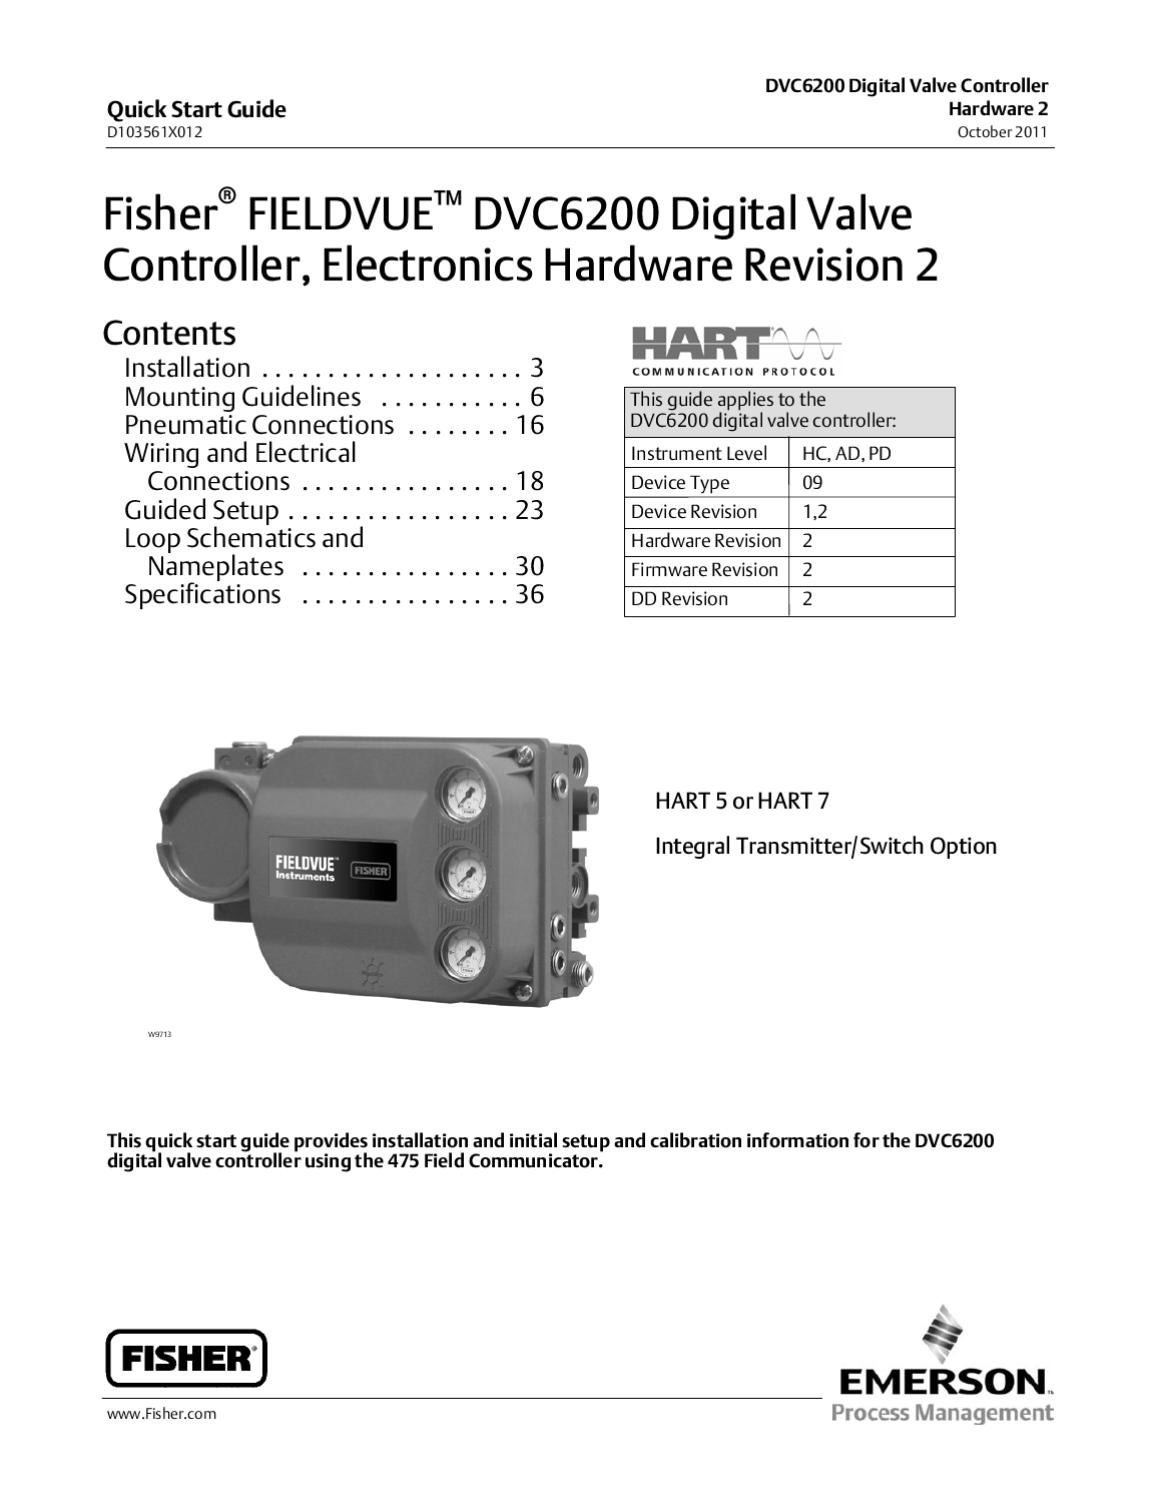 page_1 dvc6200 quick start guide elctrncs hrdwre rev 2 oct 2011 by rmc fisher dvc 2000 wiring diagram at eliteediting.co